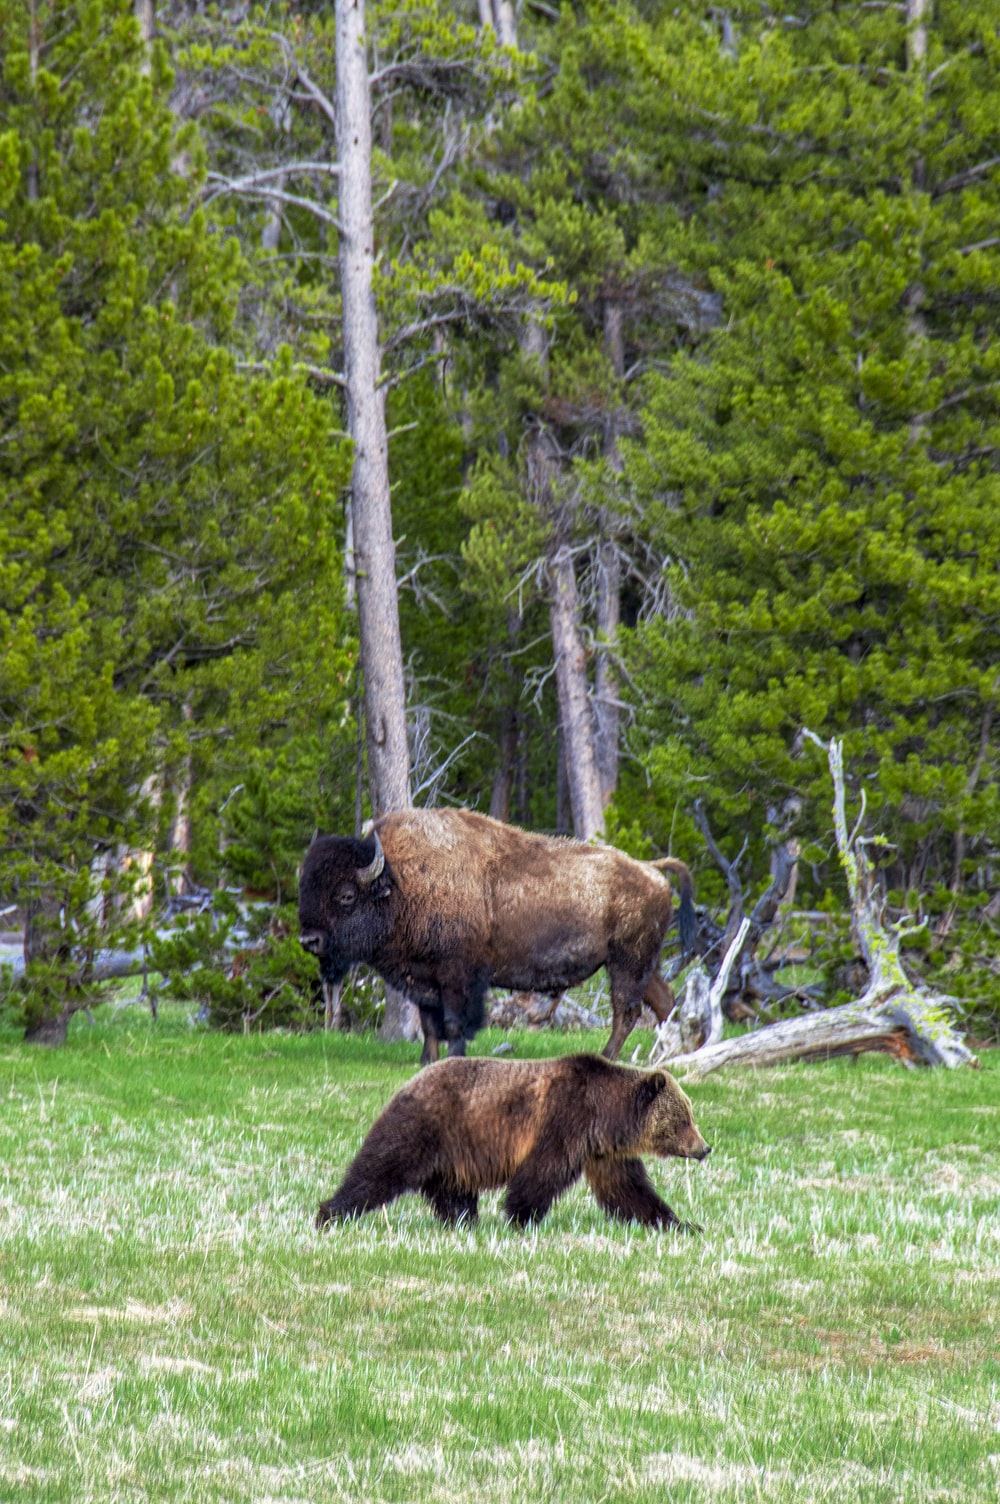 brown bison standing near brown grizzly bear